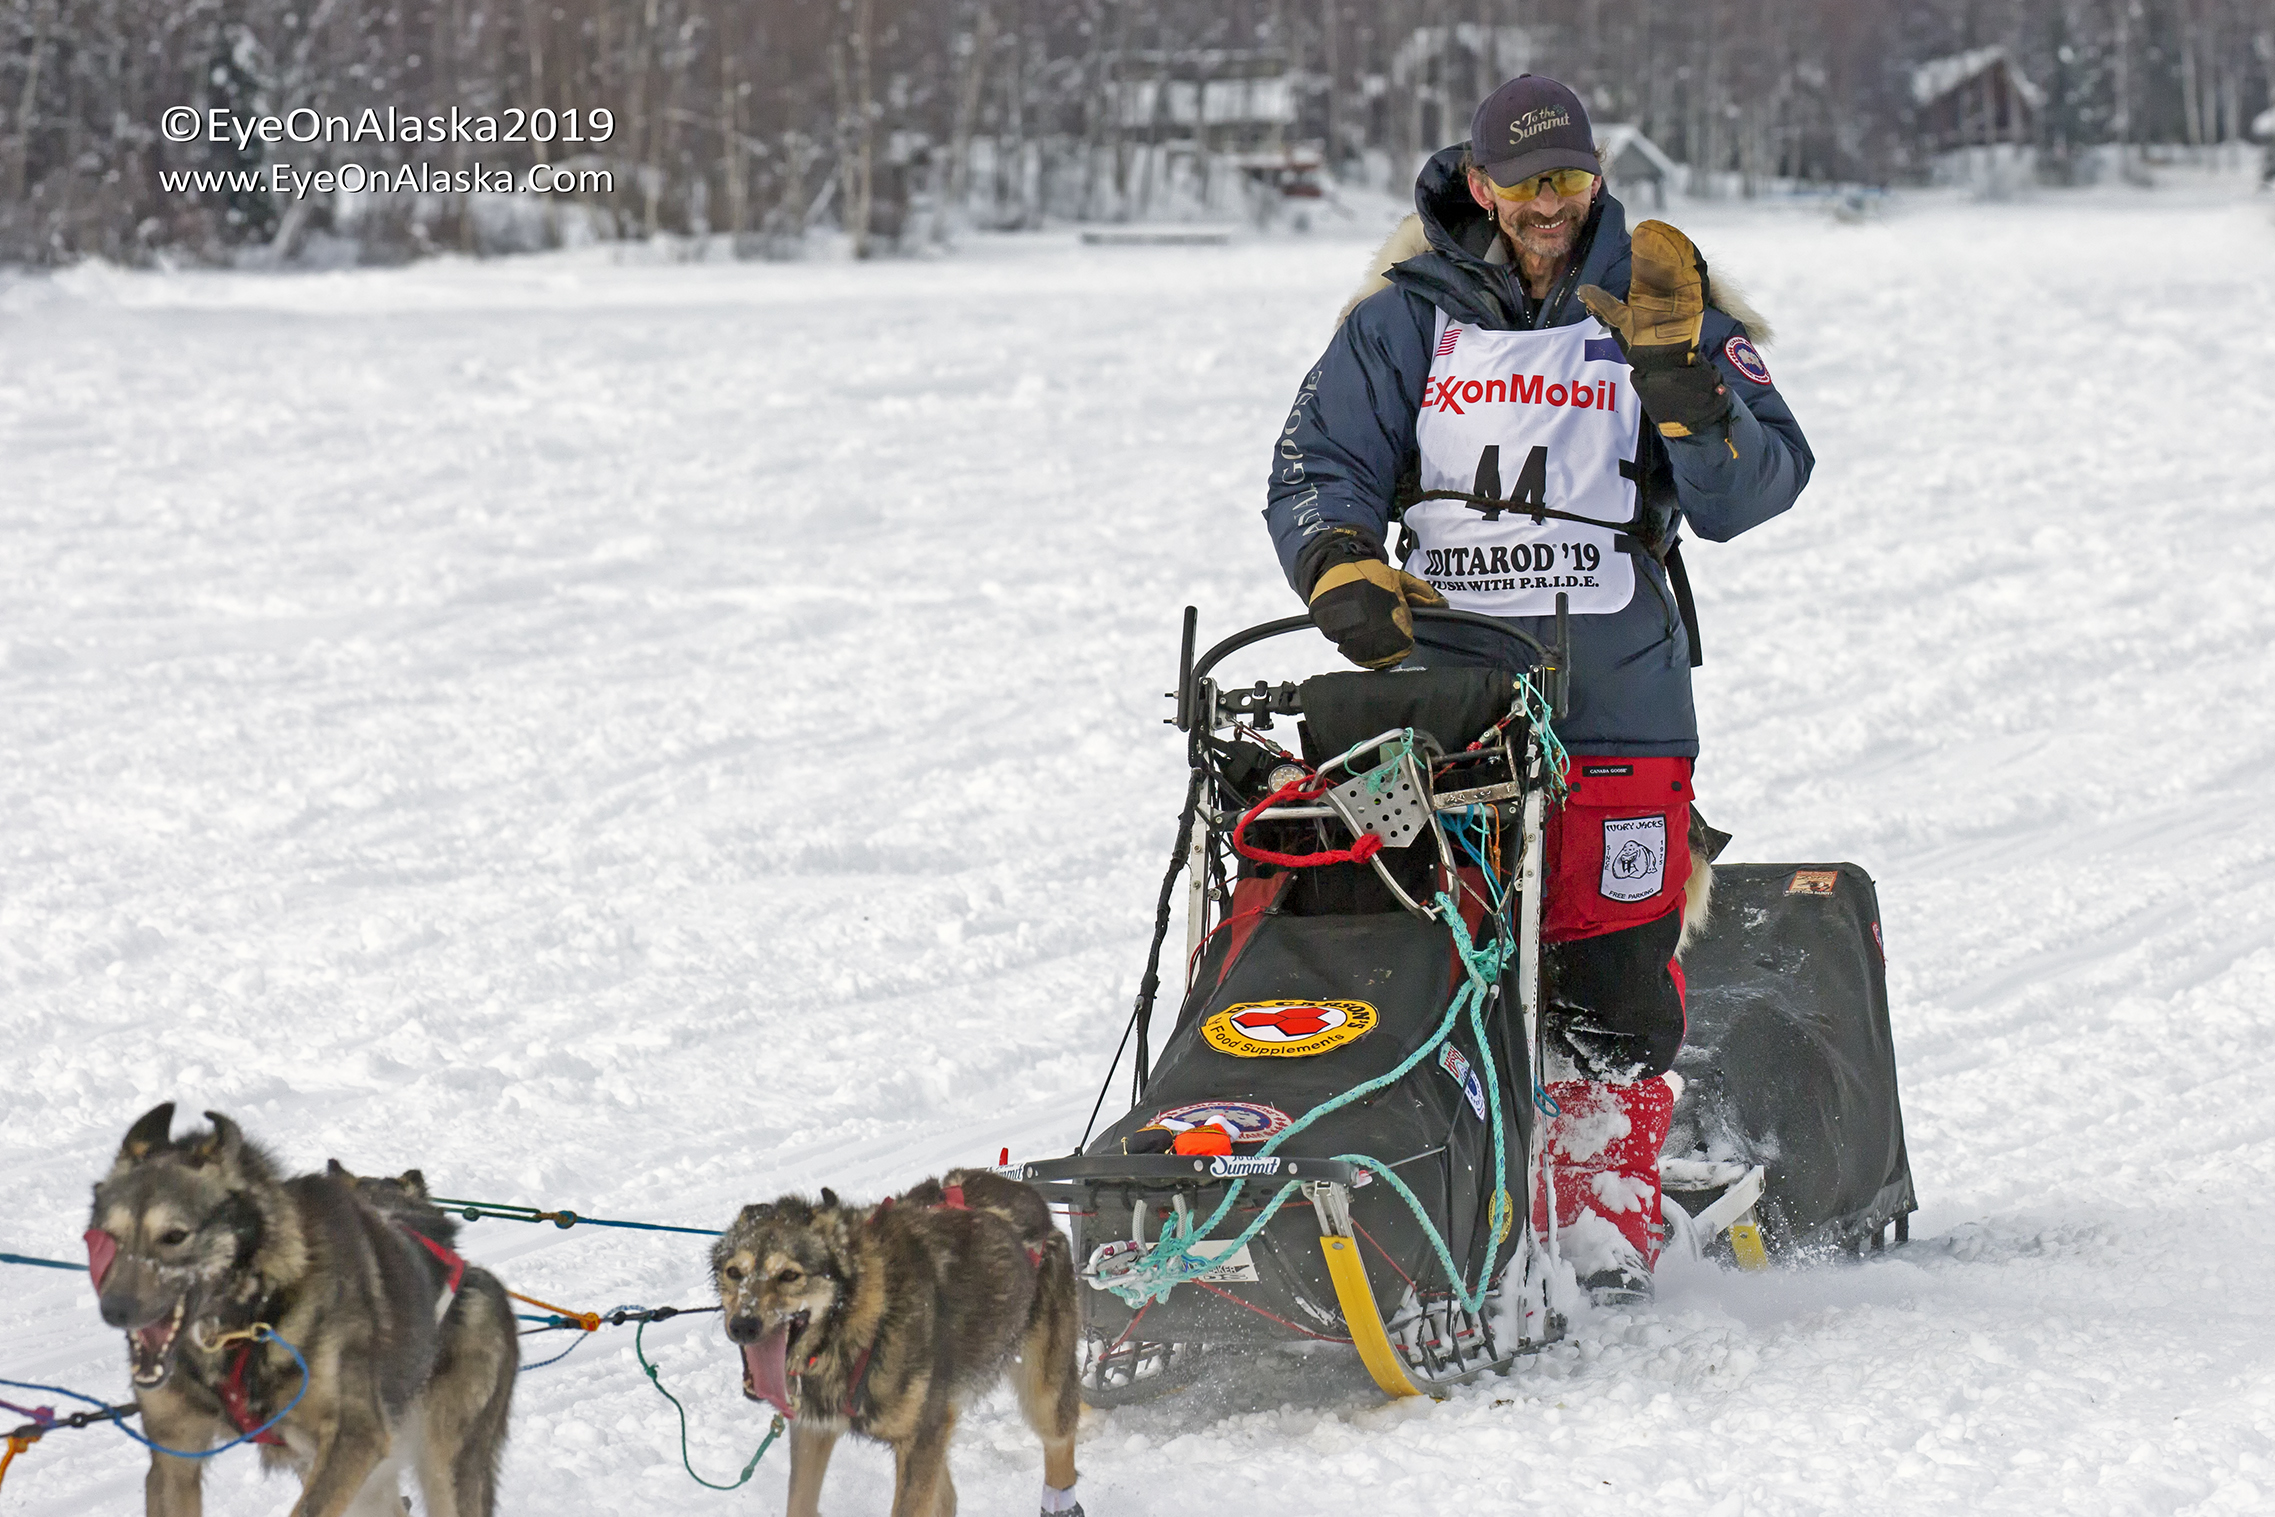 The toughest musher on the trail, 4 time winner of the Iditarod, 4 time winner of the Yukon Quest, cancer survivor.  Lance Mackey.